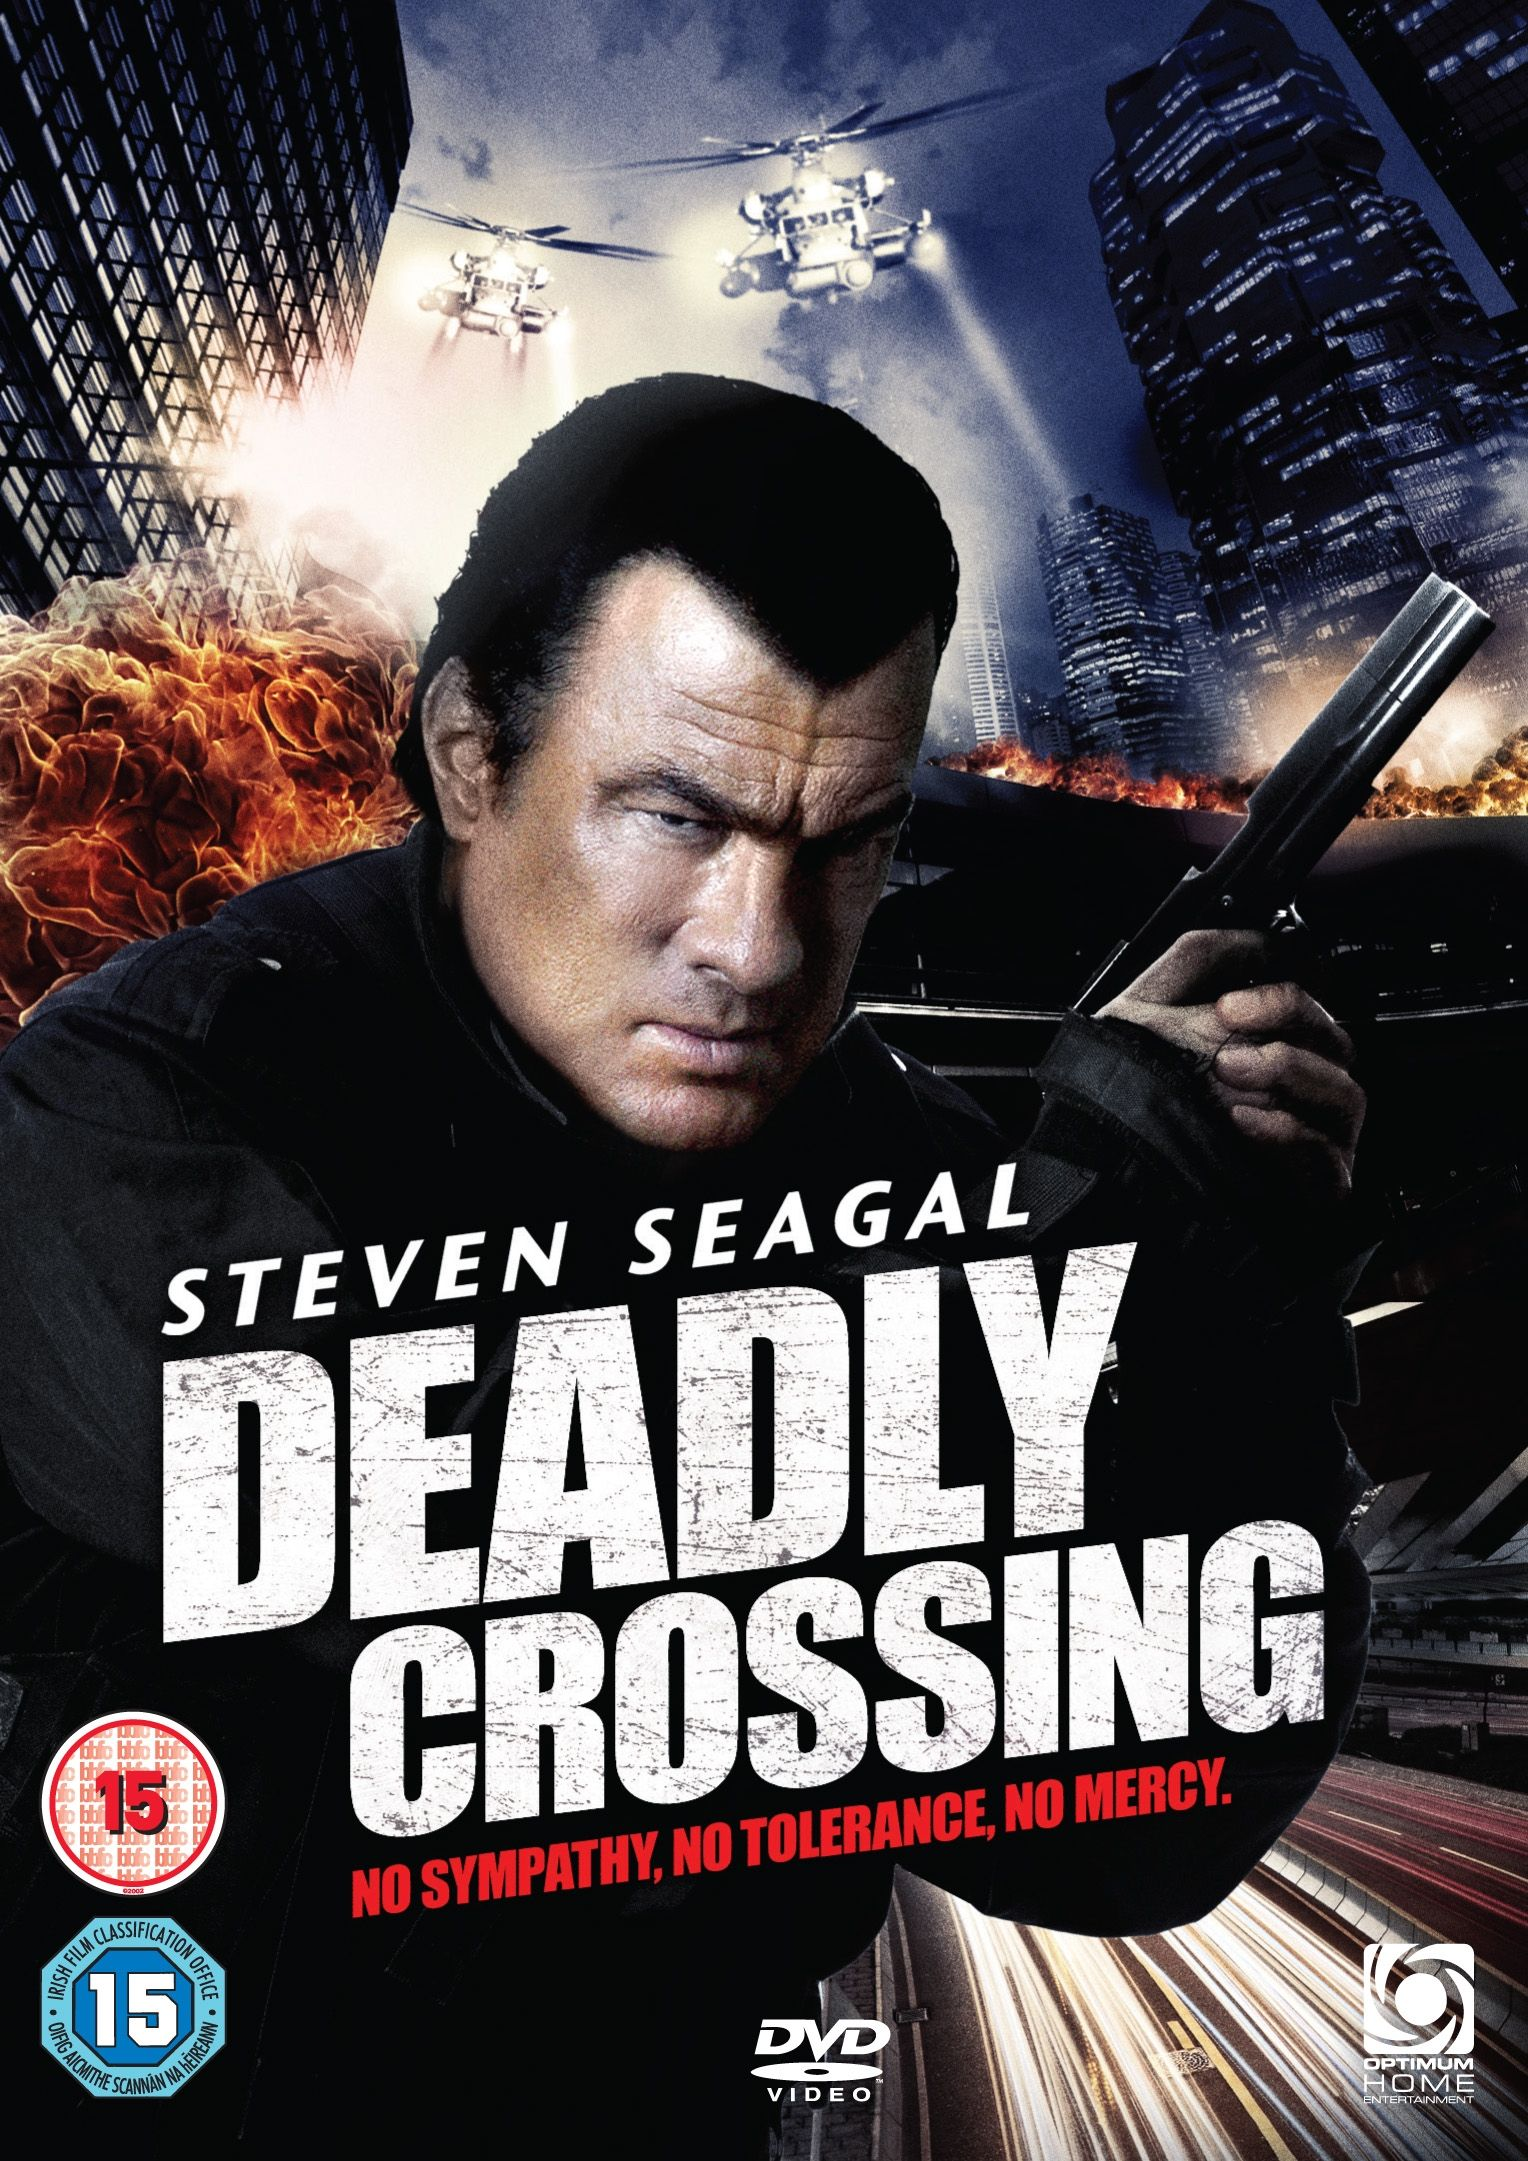 Deadly Crossing (With images) Steven seagal, Movies to